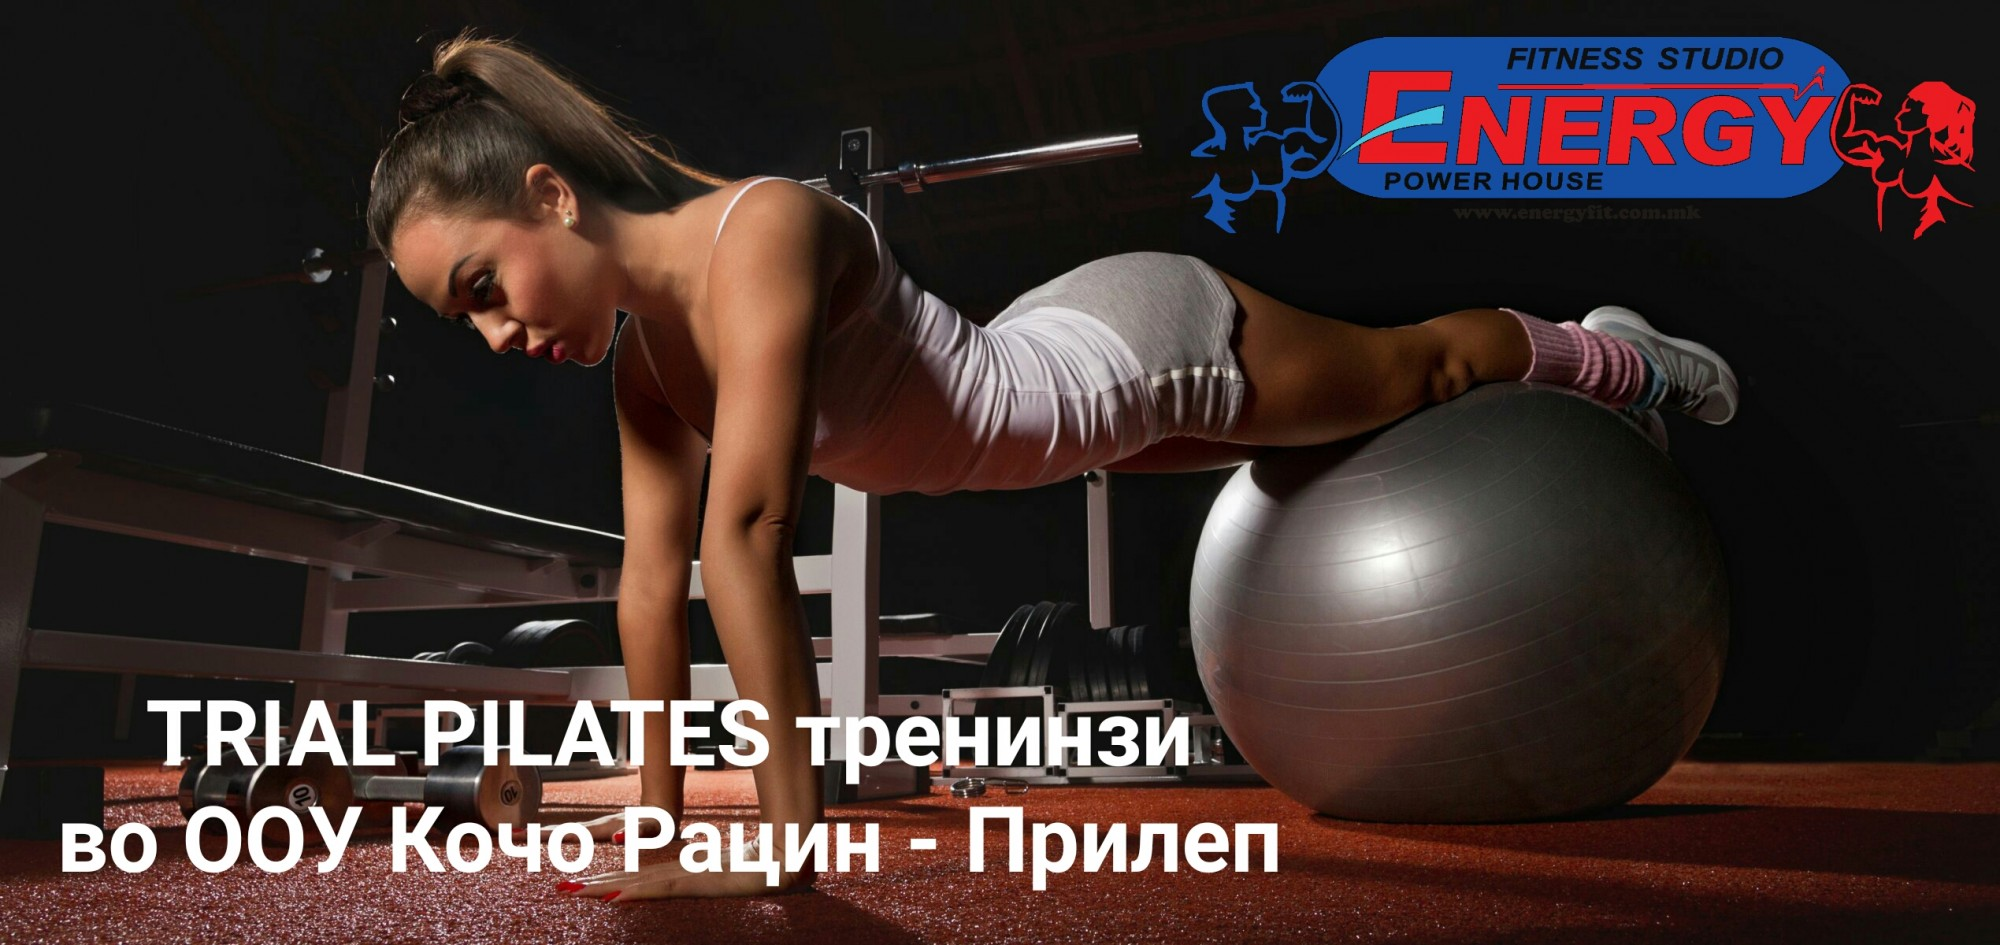 fitness-pilates-ball